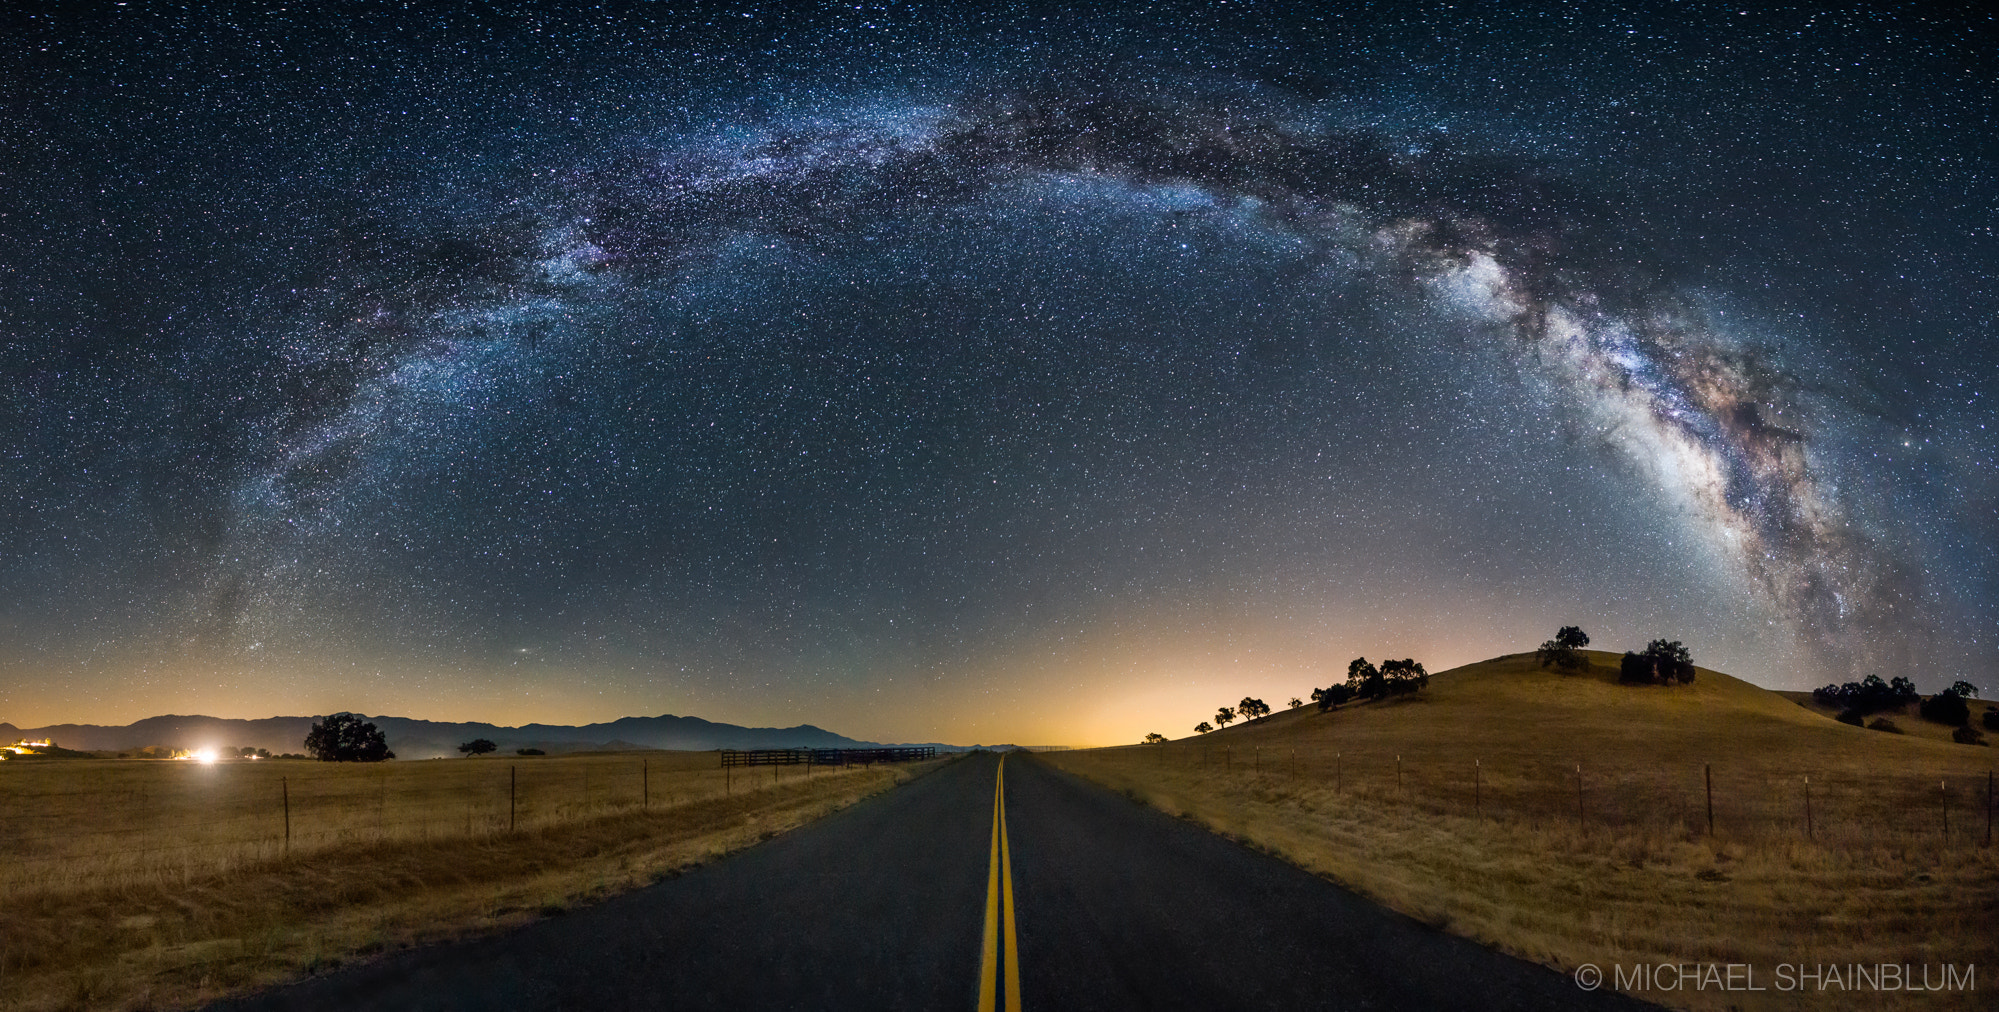 Photograph The Galaxy Guides Us Home by Michael Shainblum on 500px